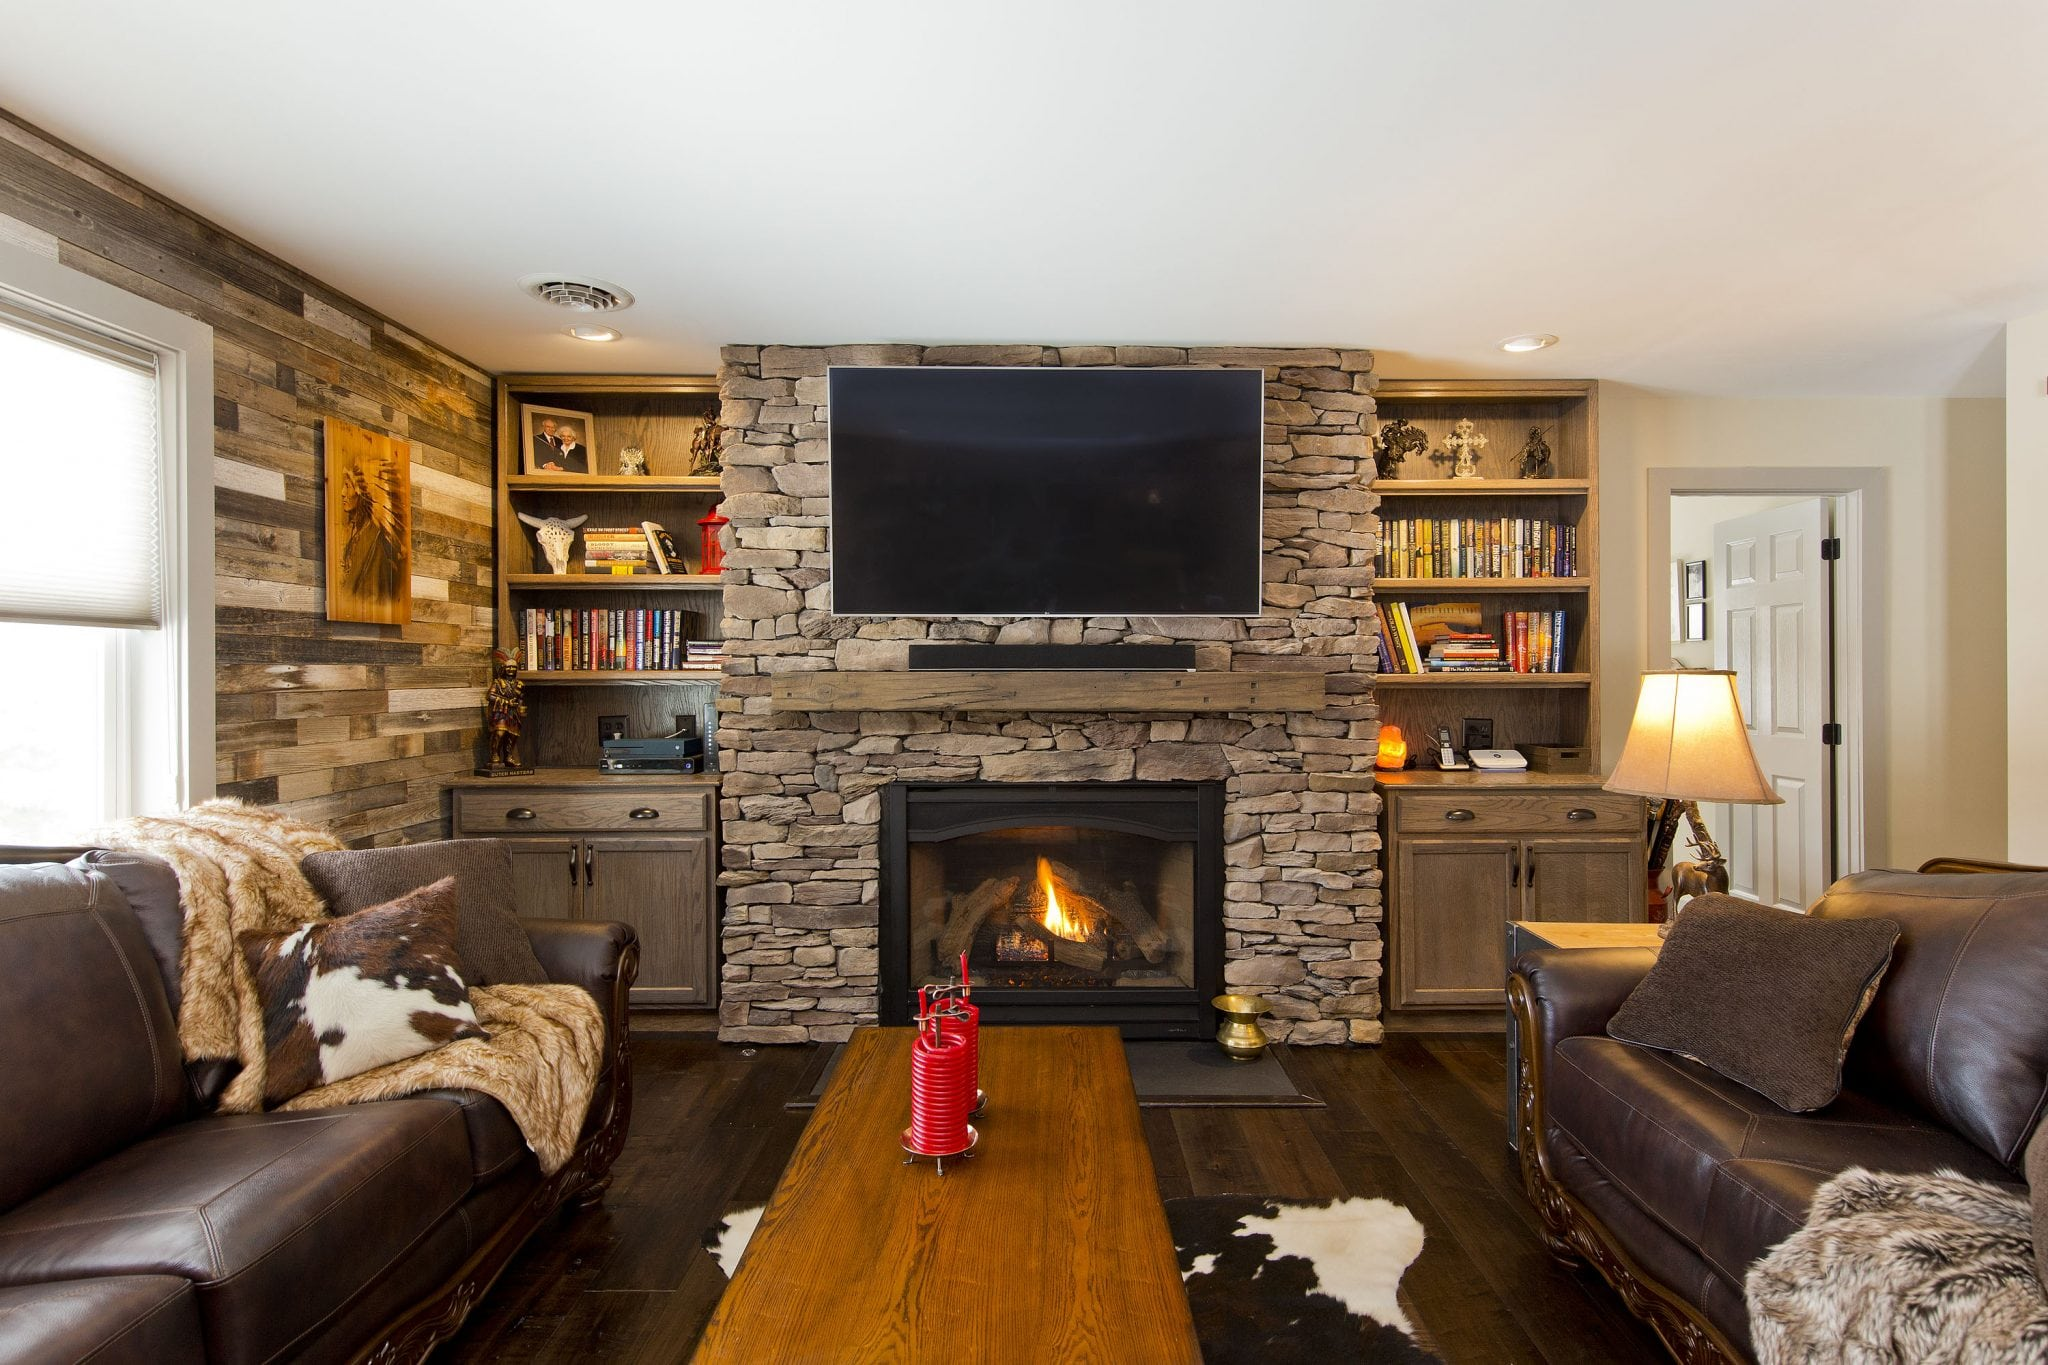 Beautiful renovation with stone fireplace and leather couches